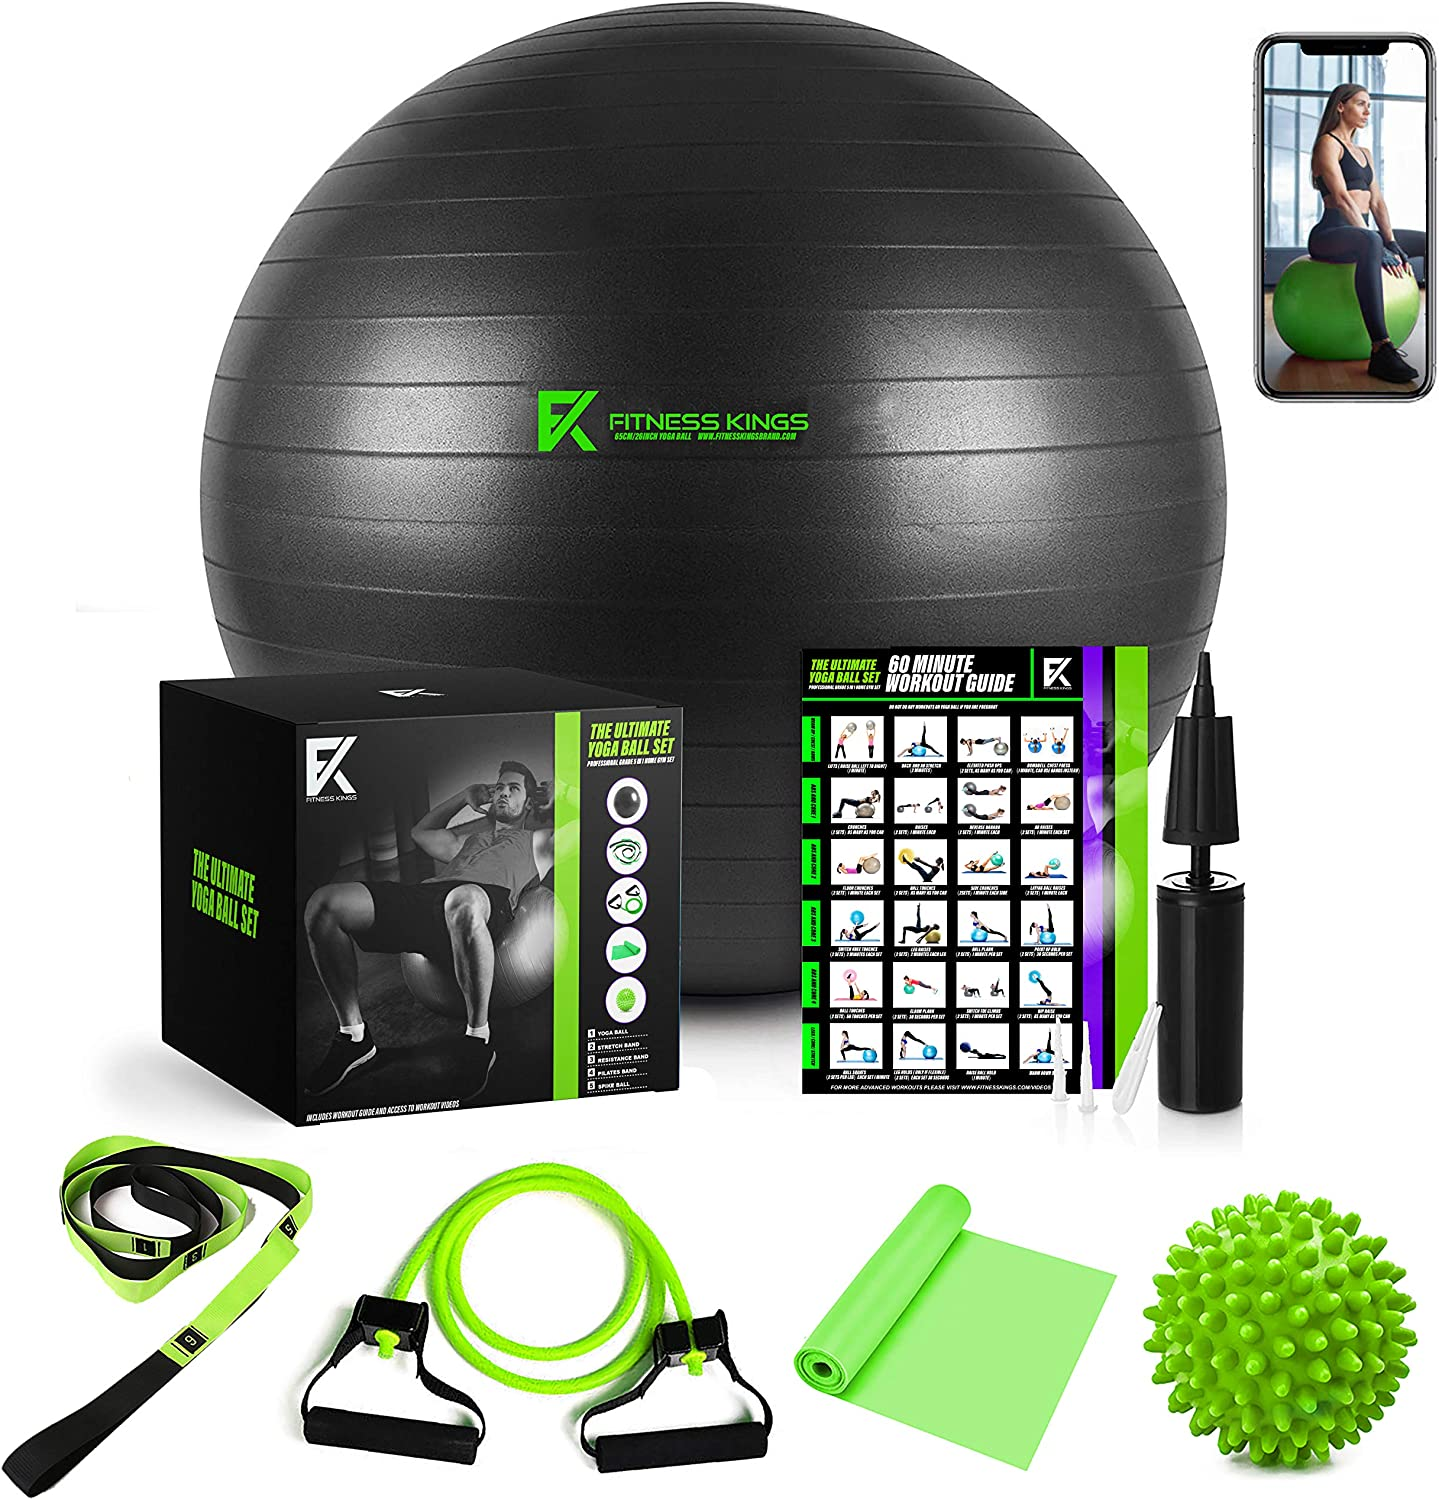 The Ultimate Yoga Ball Set – 5 in 1 Fitness Ball Set, Resistance Band, Pilates Band, Stretch Yoga Strap, and Spiky Massage Ball with Fitness Guide and Videos Swiss Ball